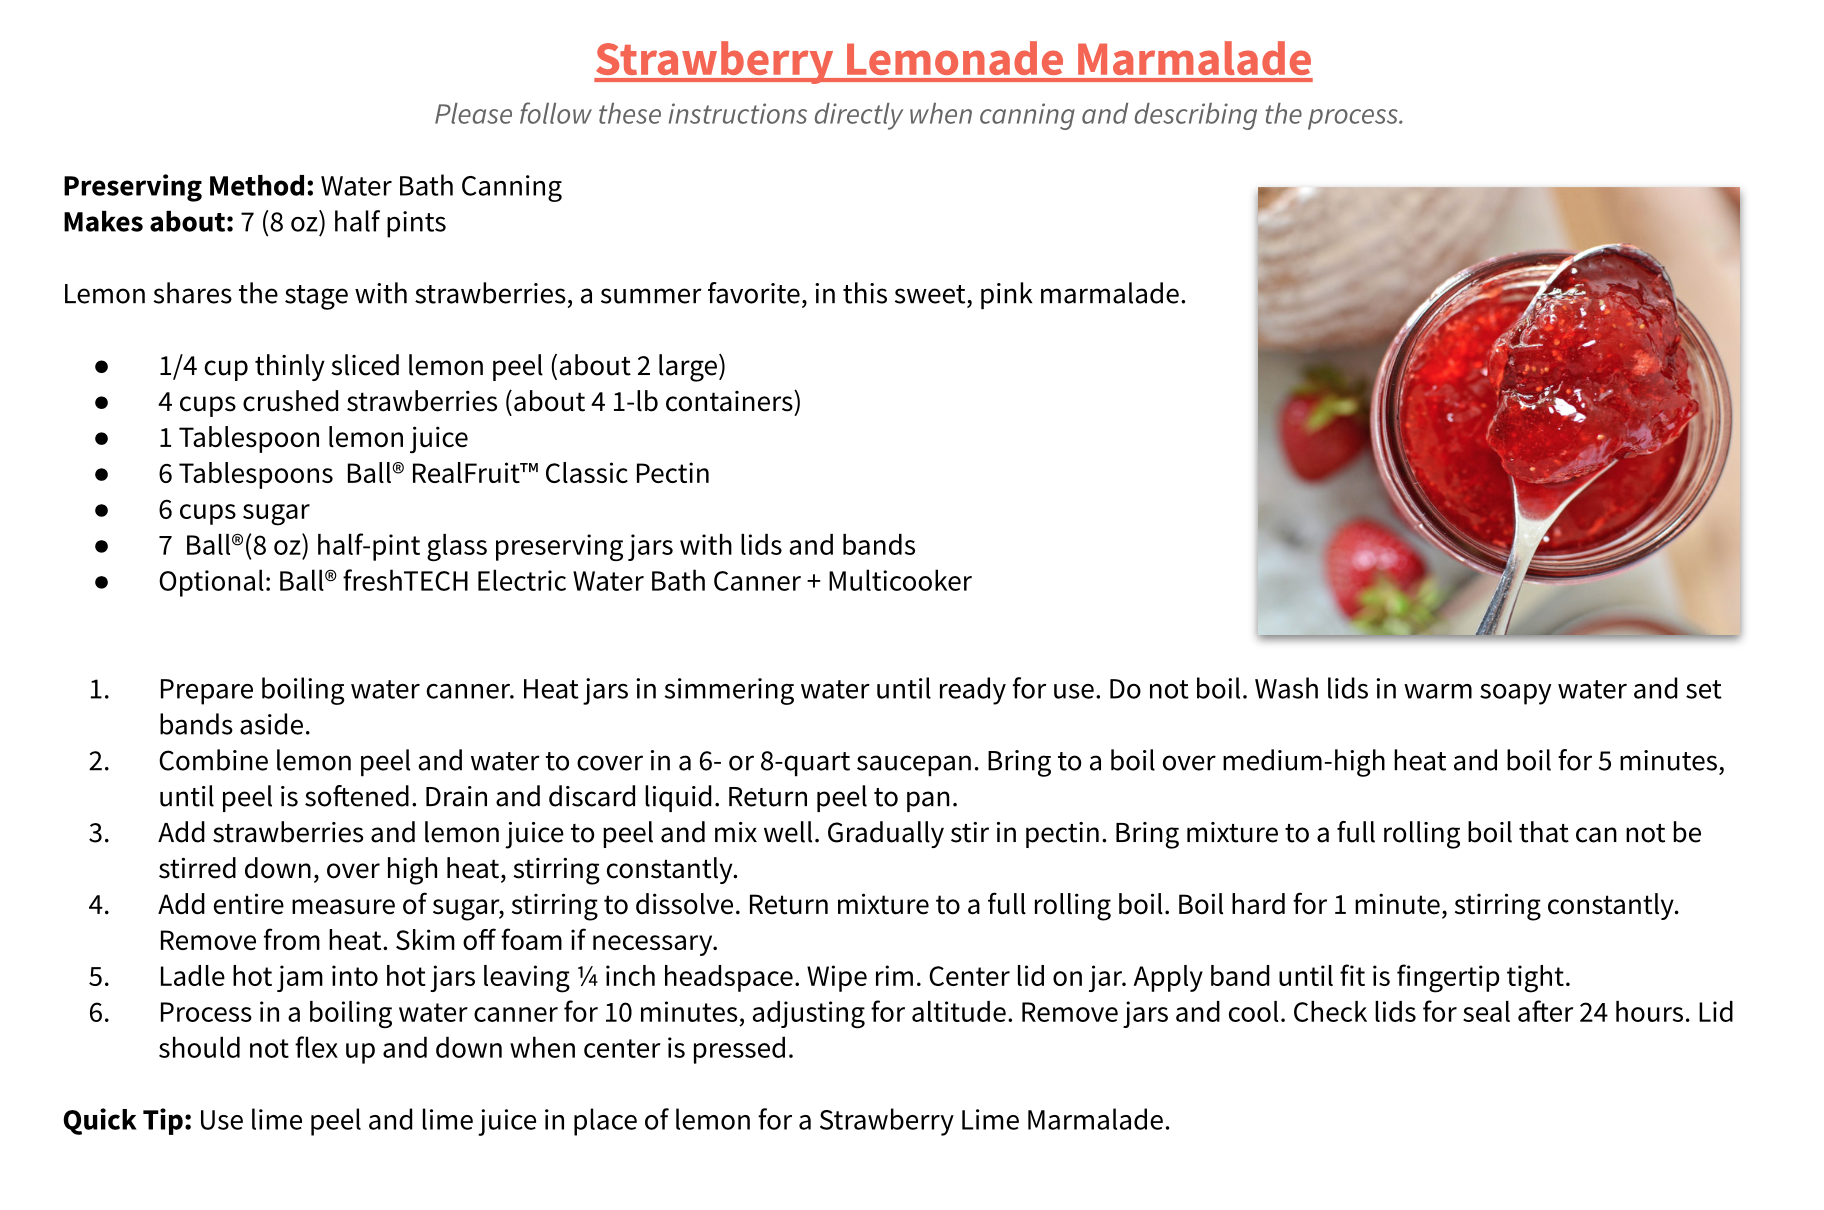 Strawberry-lemonade-marmalade-ashley-jones-ball-jars-recipe